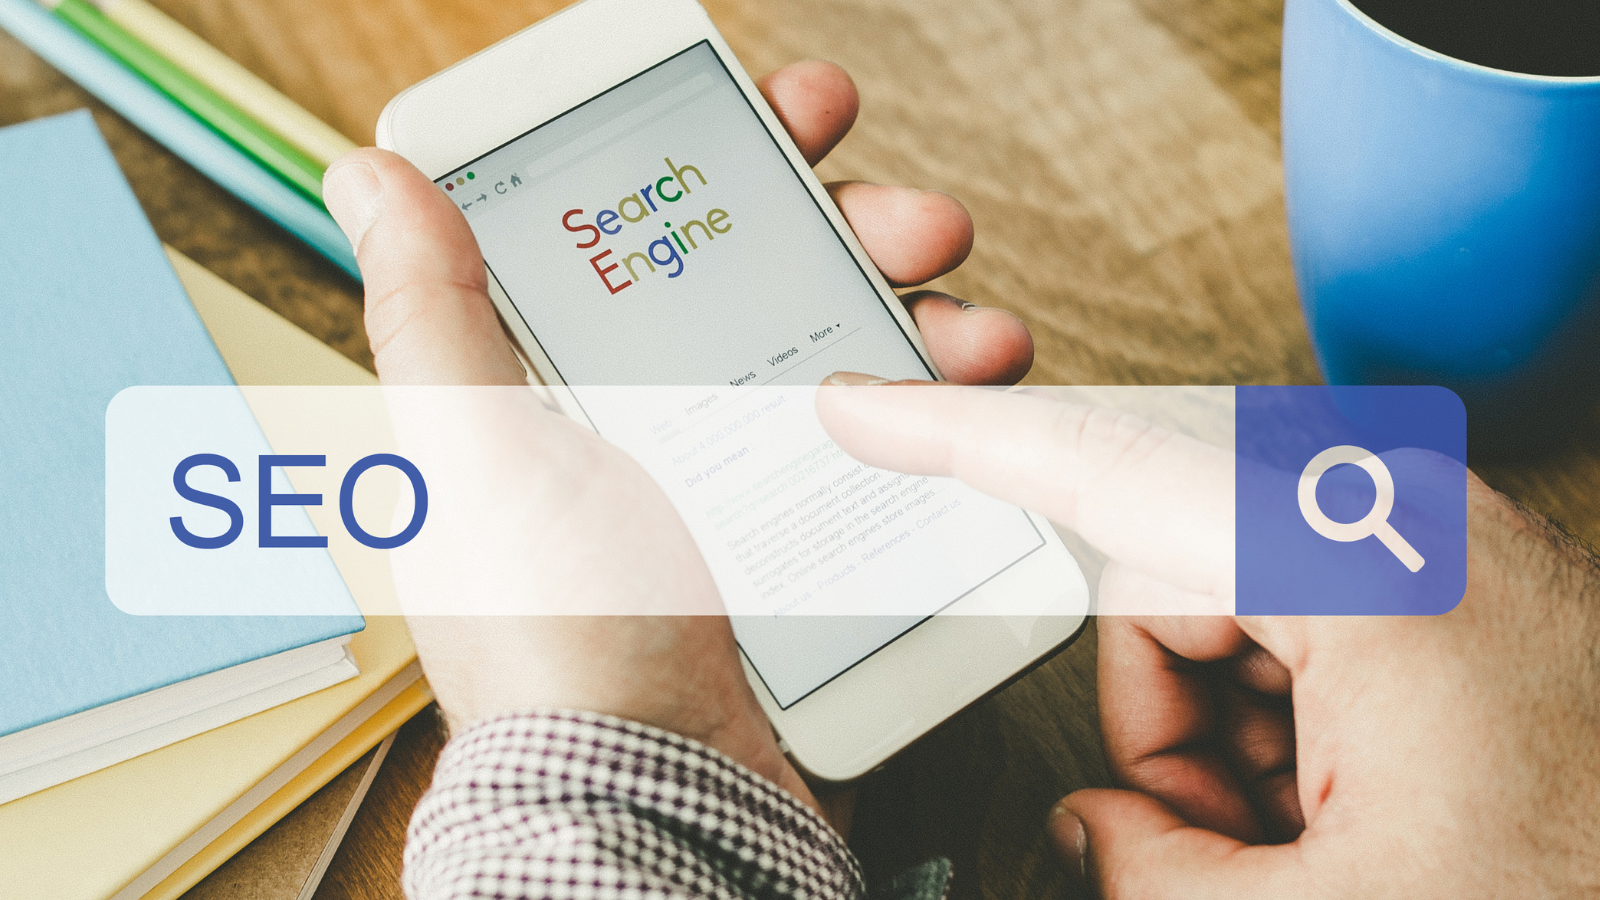 10 Actionable Steps You Can Take to Boost Your Website's SEO